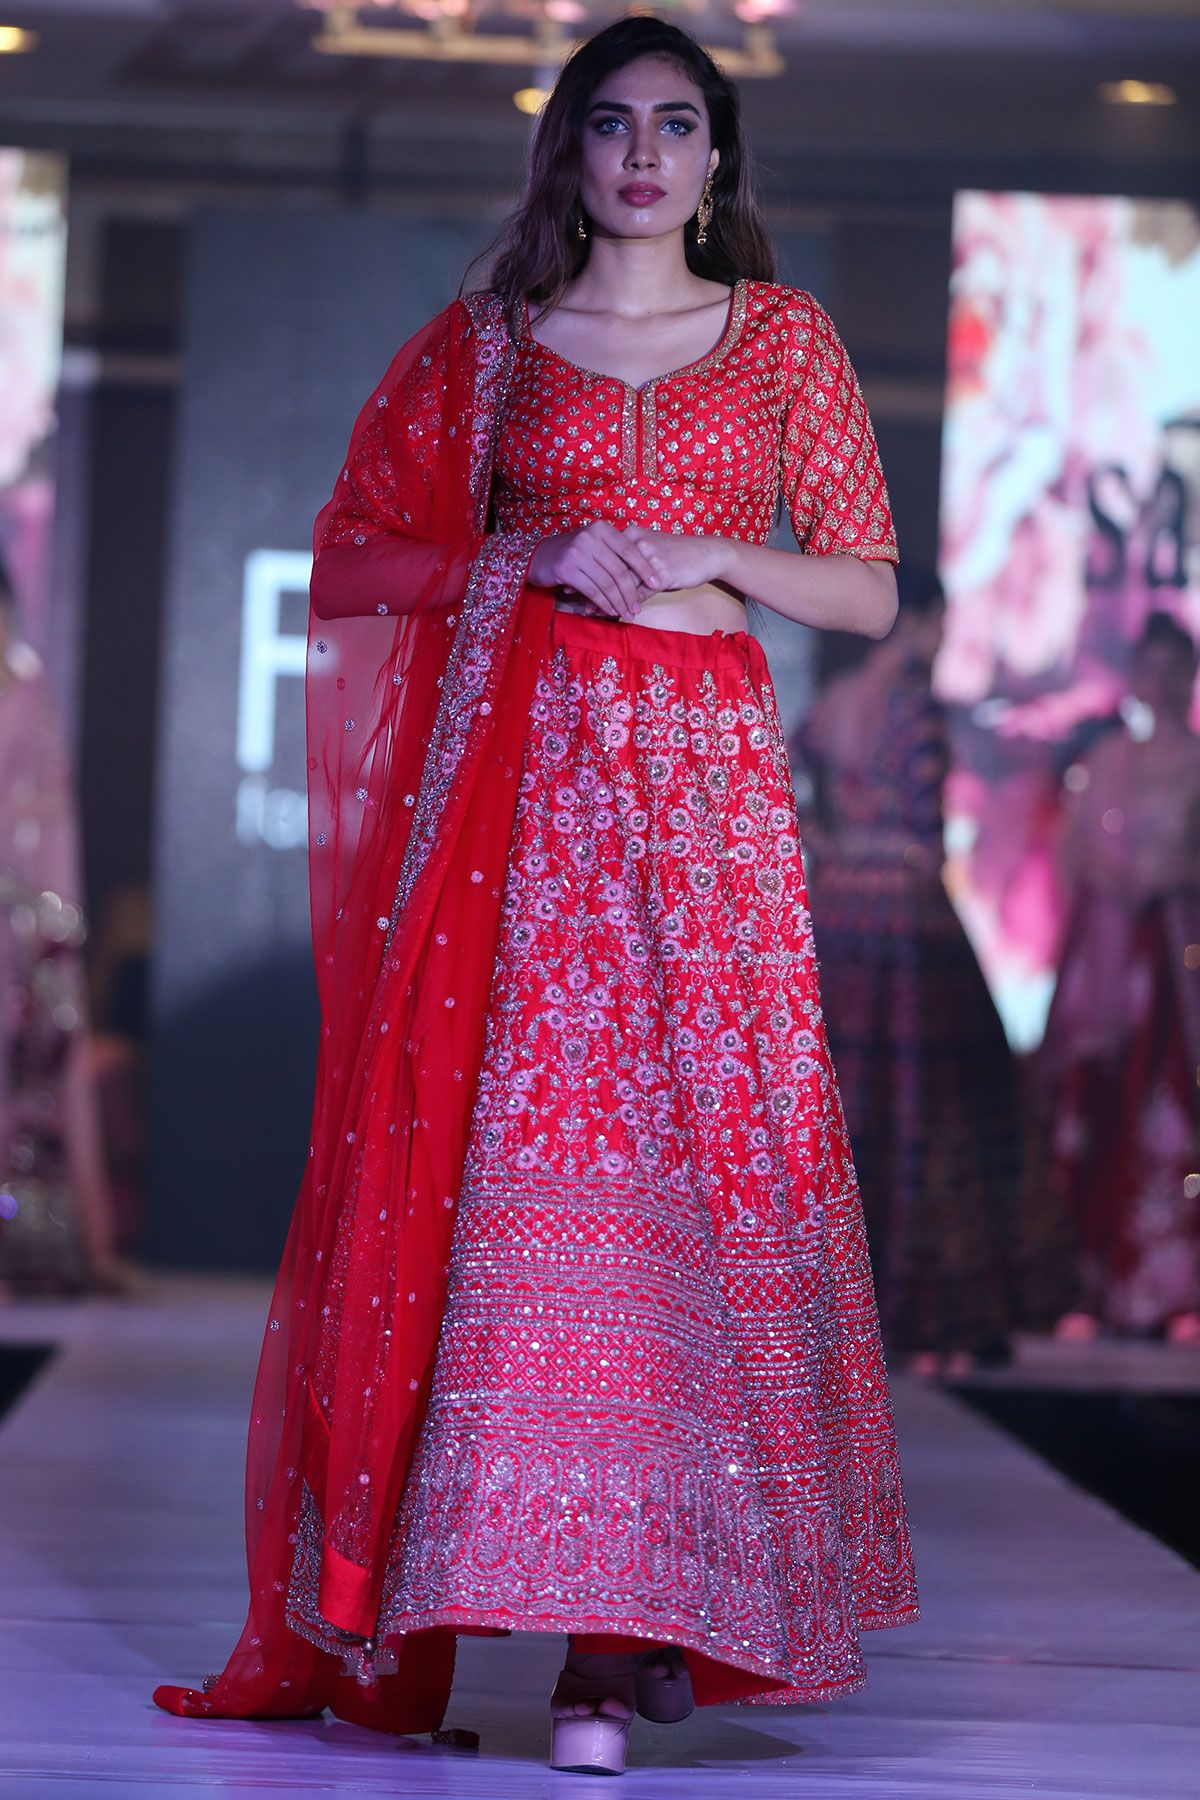 Pin by Samyakk on Designer Bridal Lehengas Bridal